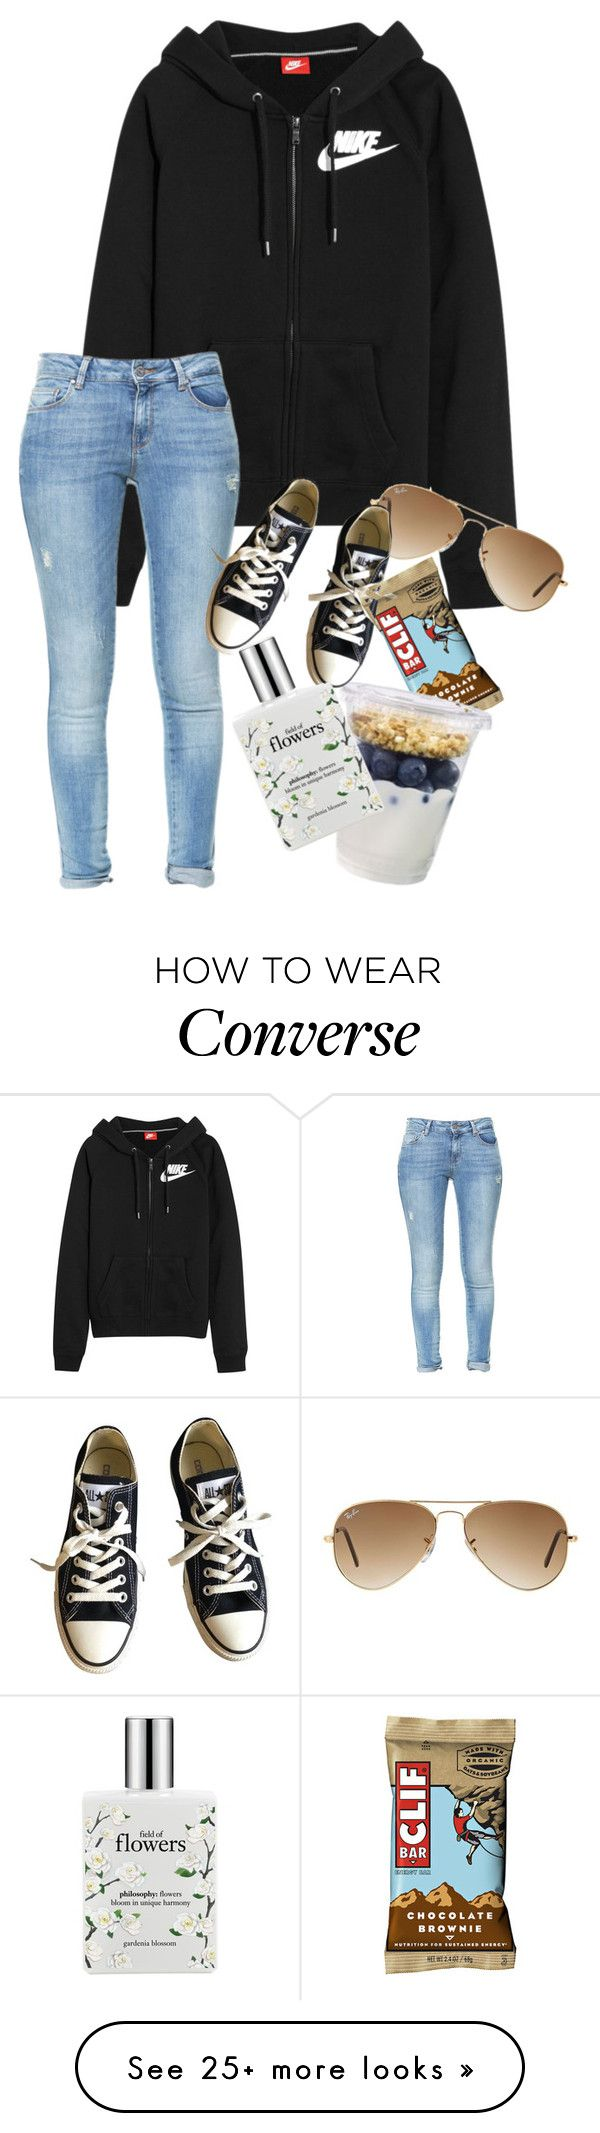 """Nike"" by southern-belle02 on Polyvore featuring NIKE, Zara, Ray-Ban, Converse and philosophy"